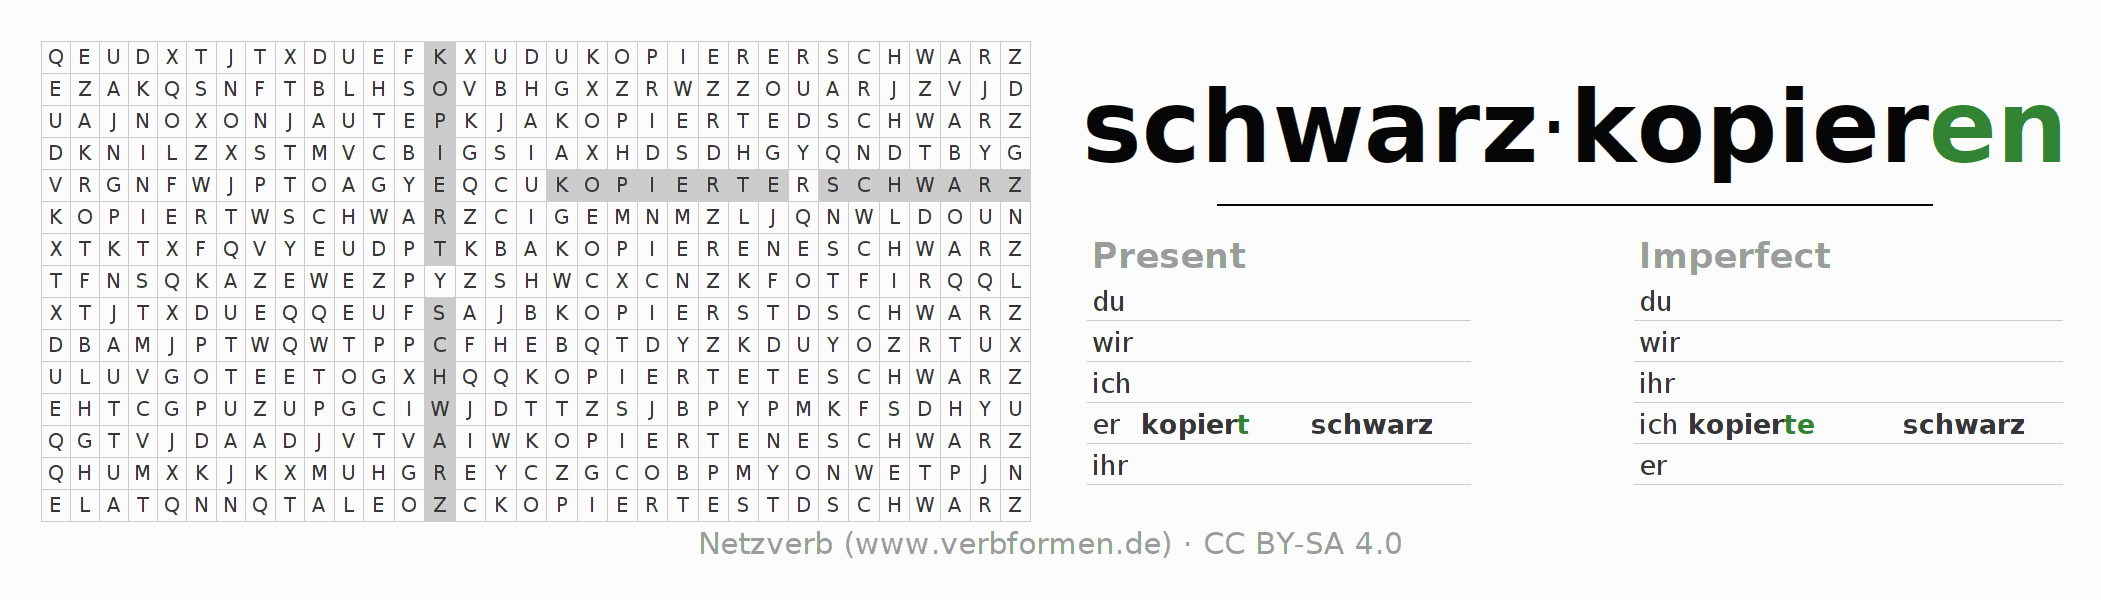 Word search puzzle for the conjugation of the verb schwarzkopieren